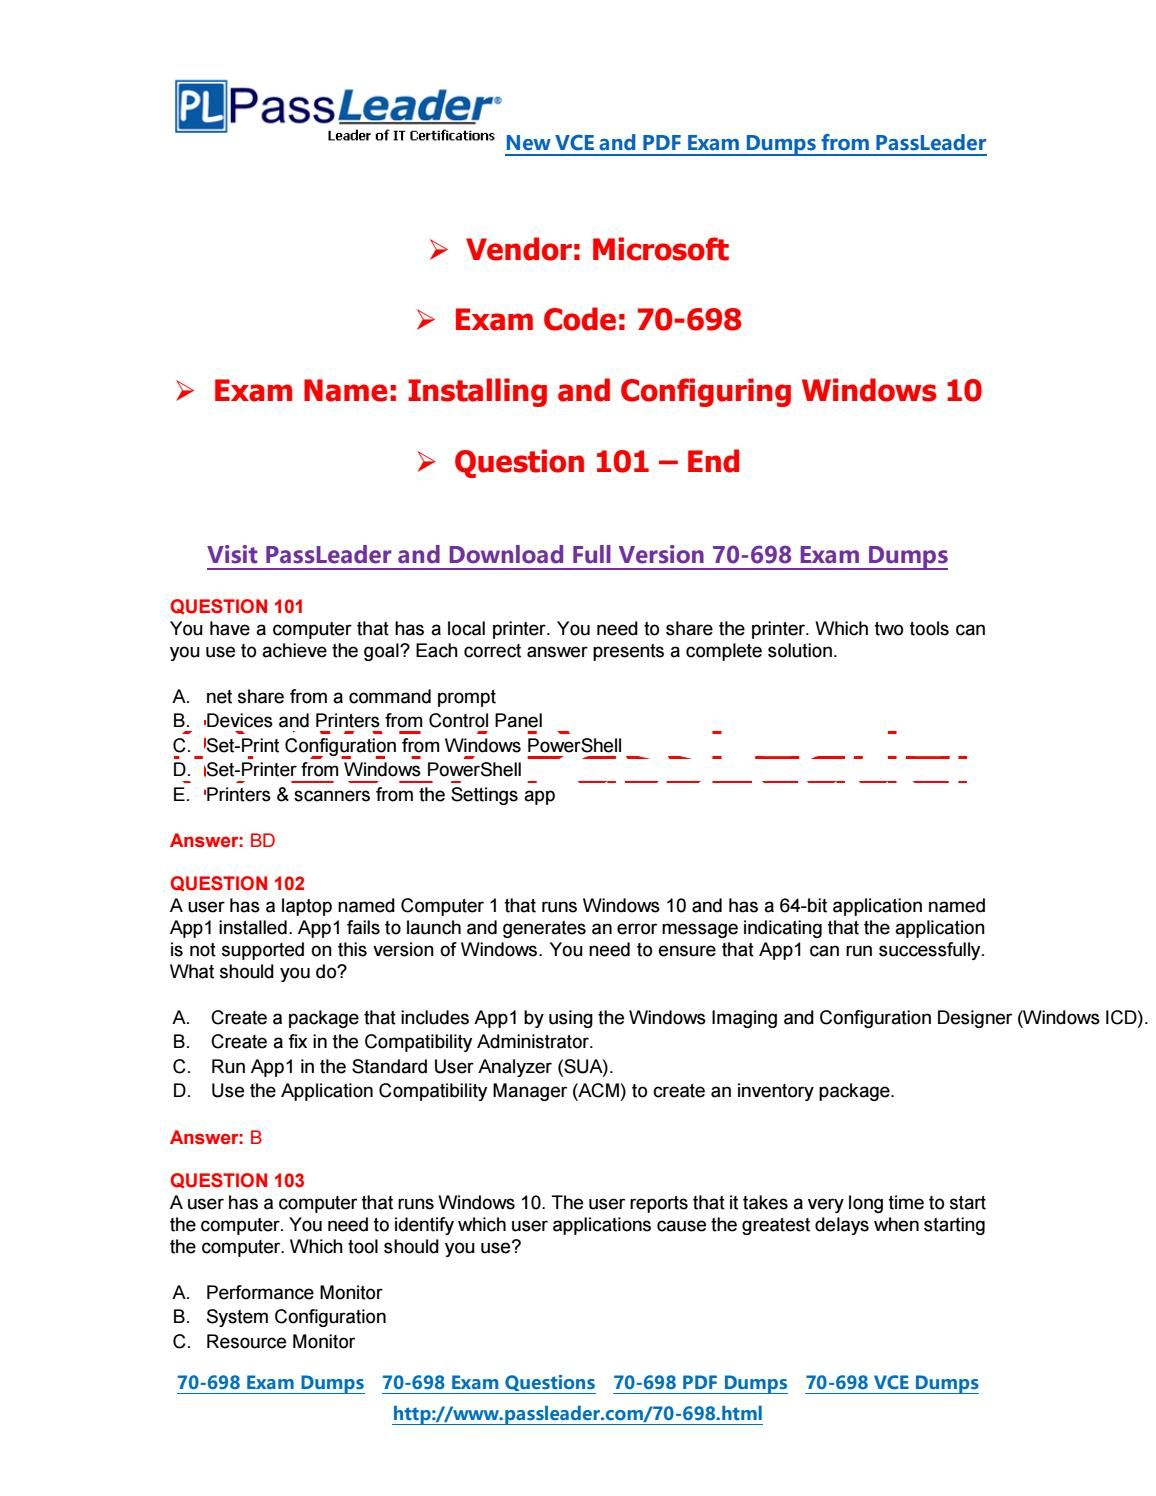 2017 Passleader 70 698 Dumps With Vce And Pdf Question 101 End